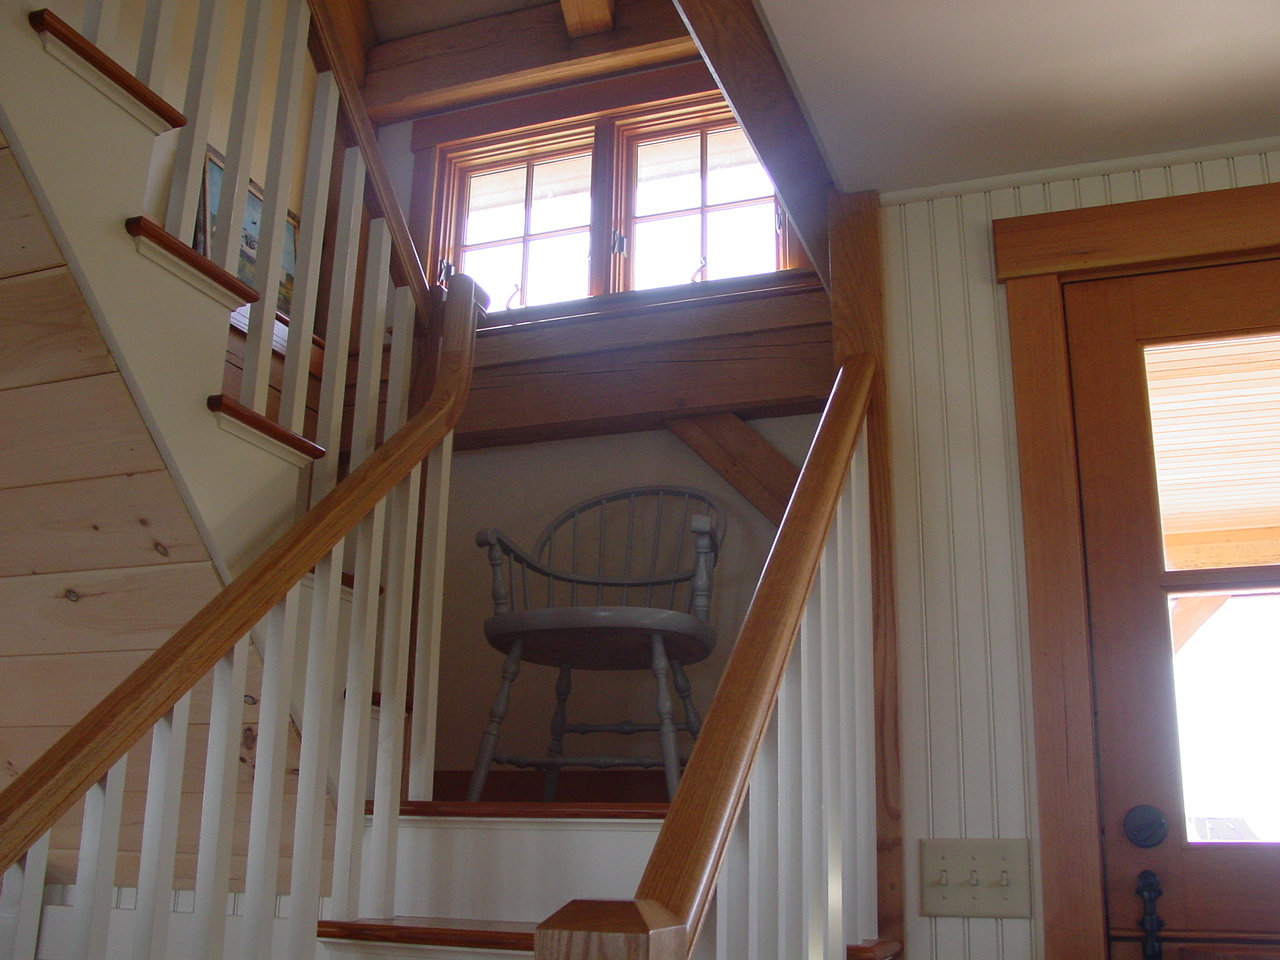 view of stairway to second floor